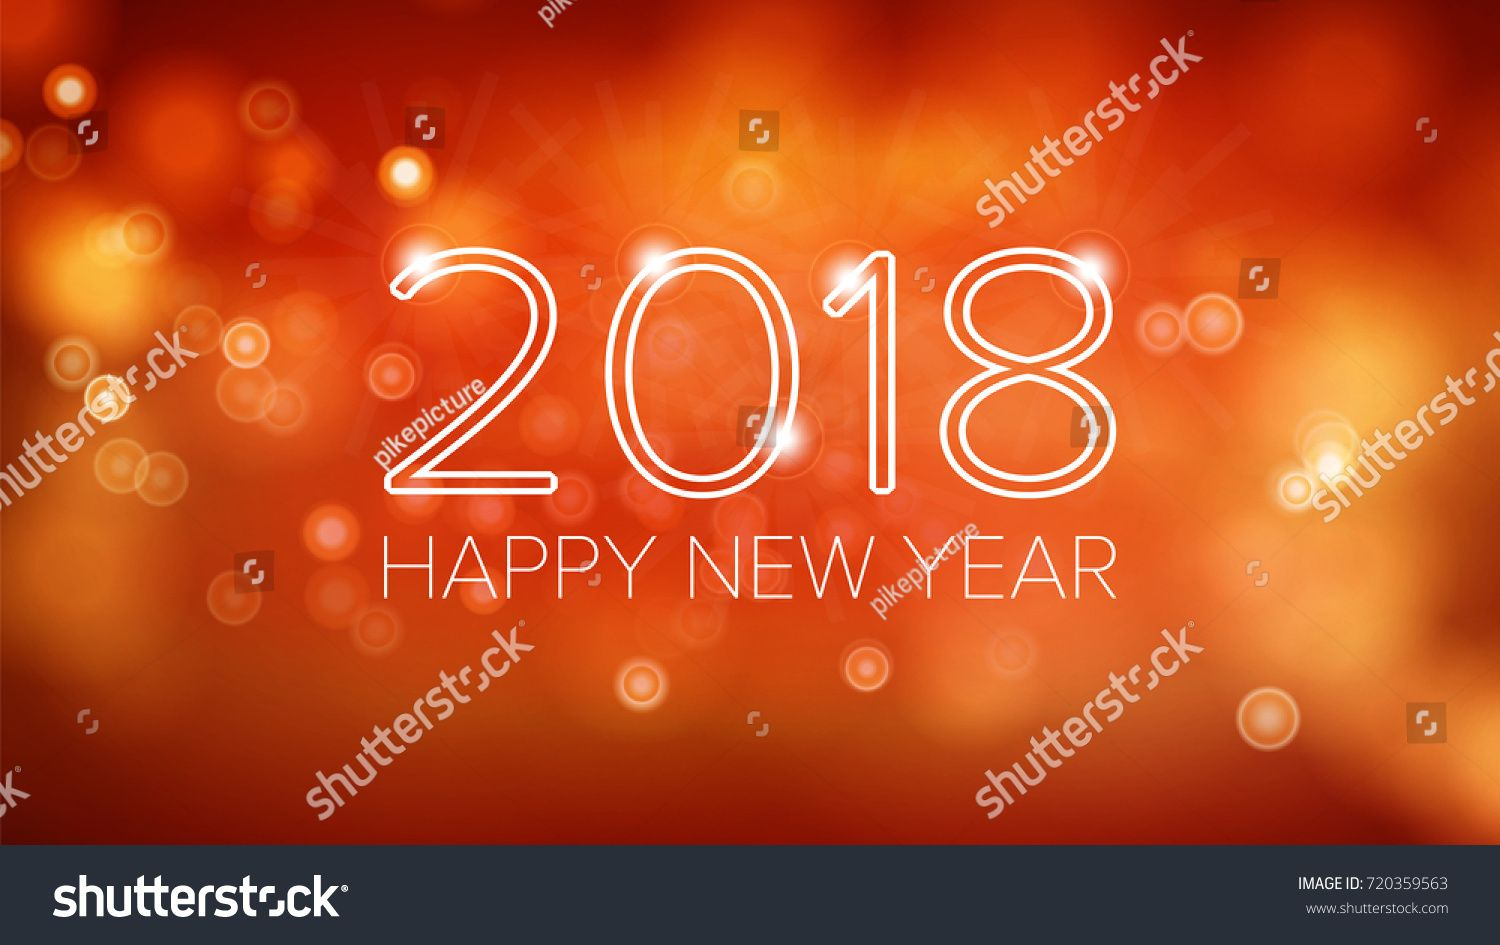 happy new year 2018 background vector orange bokeh in vintage style flyer or brochure design template 2018 festival holiday decoration illustration